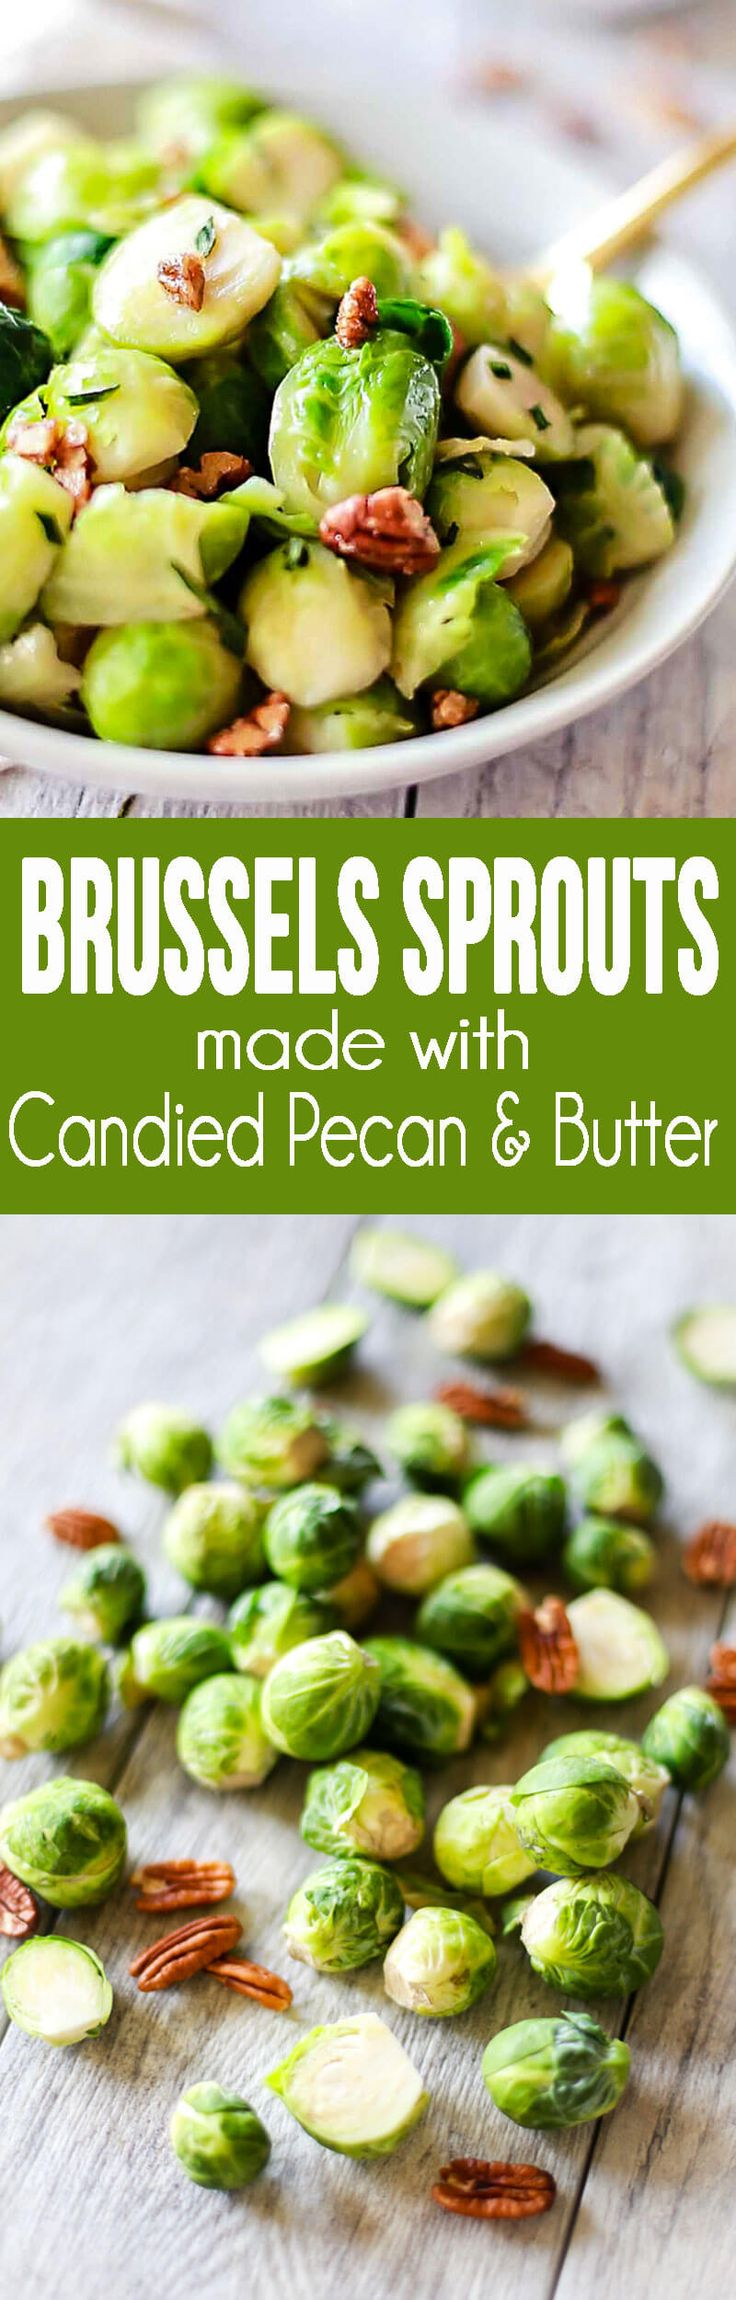 Brussels Sprouts Recipe Candied Pecans Butter Glaze. These are basically candy! And post has food safety tips too! #ad #Thanksgiving #dinnerideas